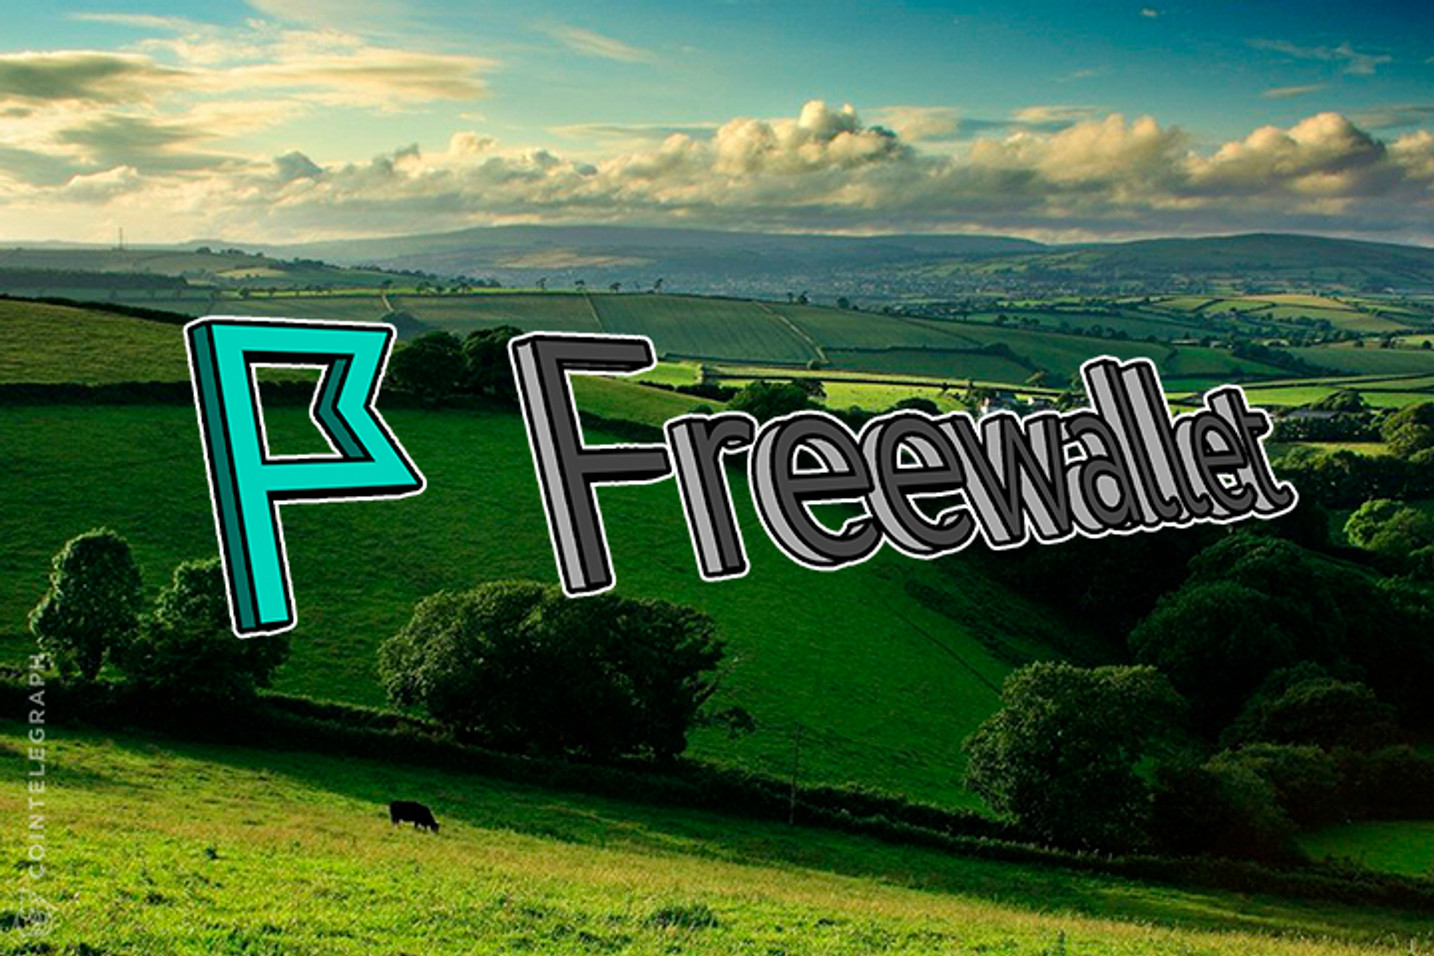 More Freedom From Freewallet